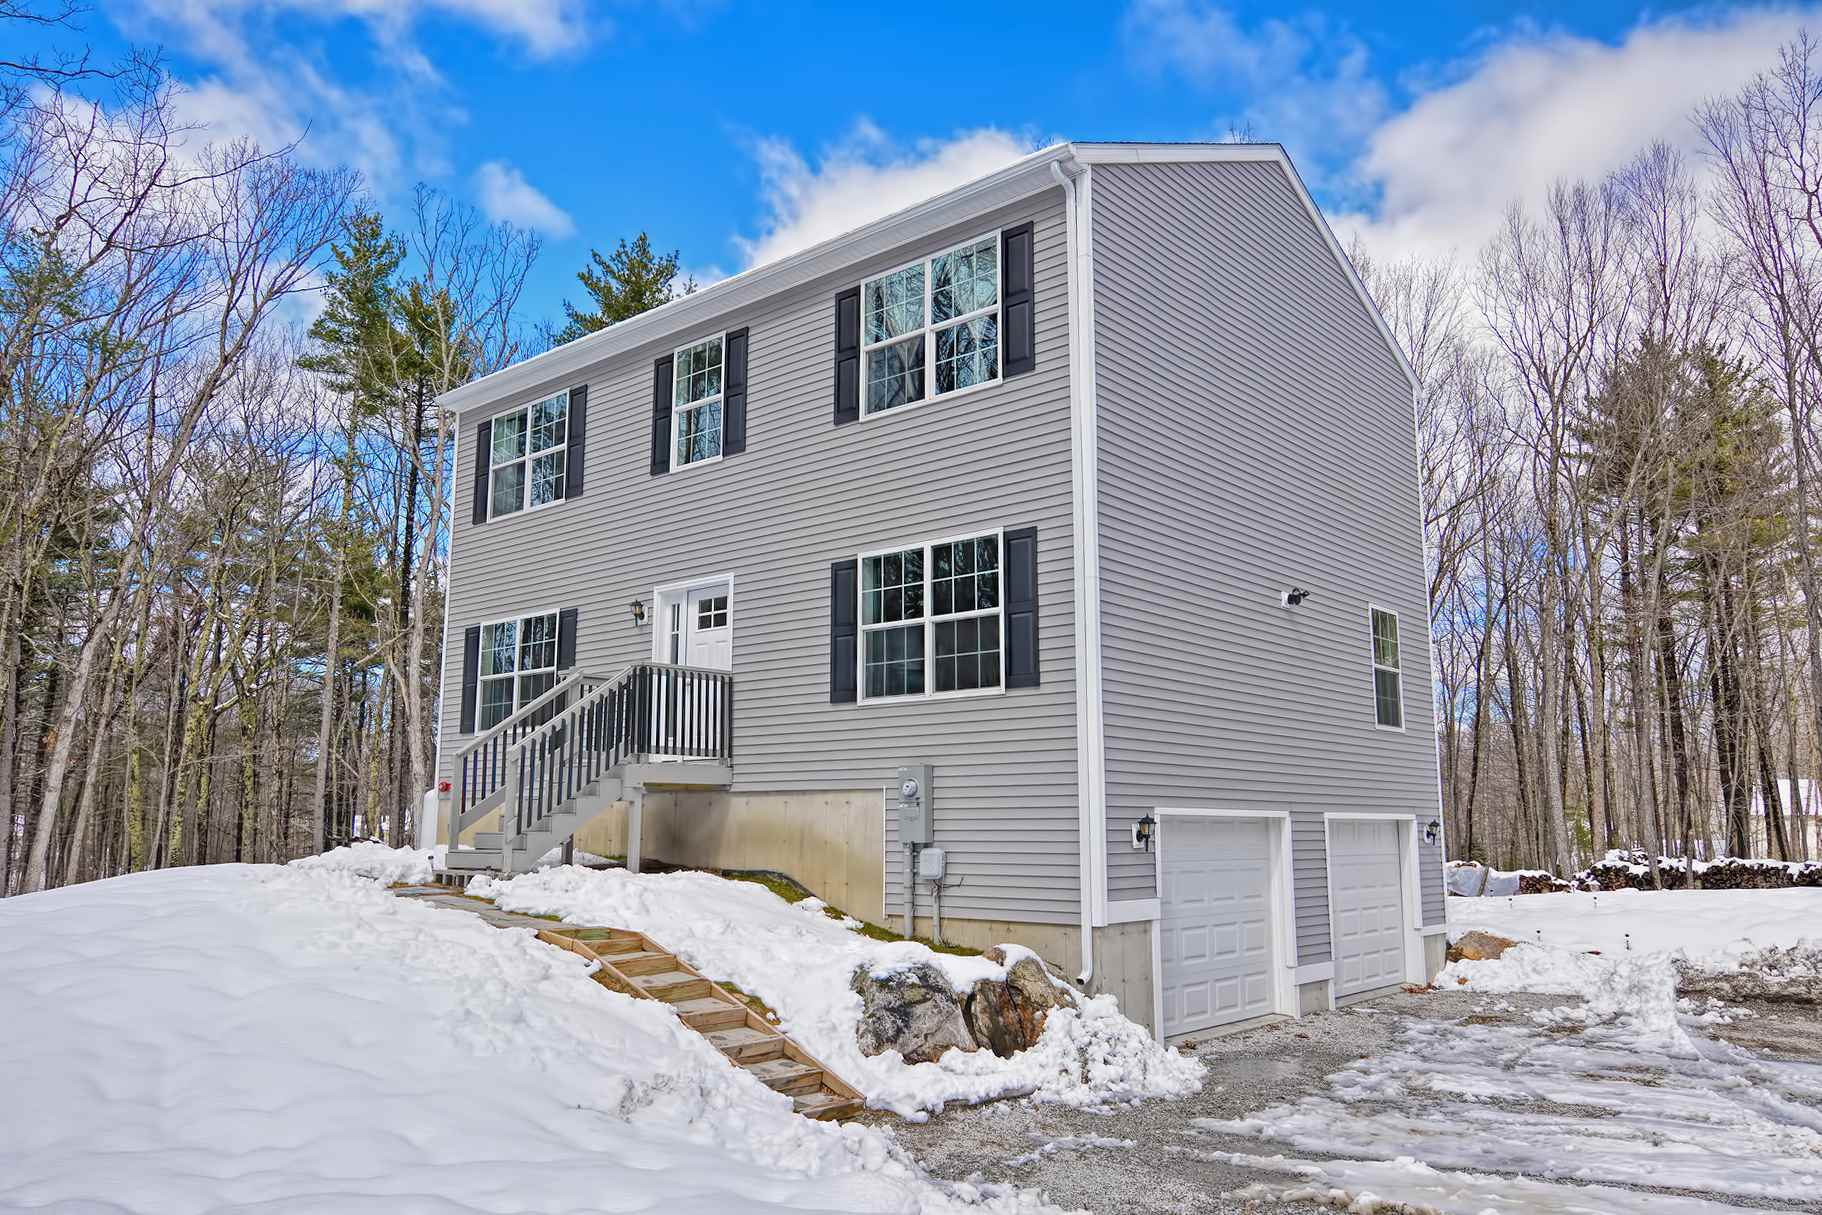 MLS 4799393: 156 Hampstead Road, Derry NH